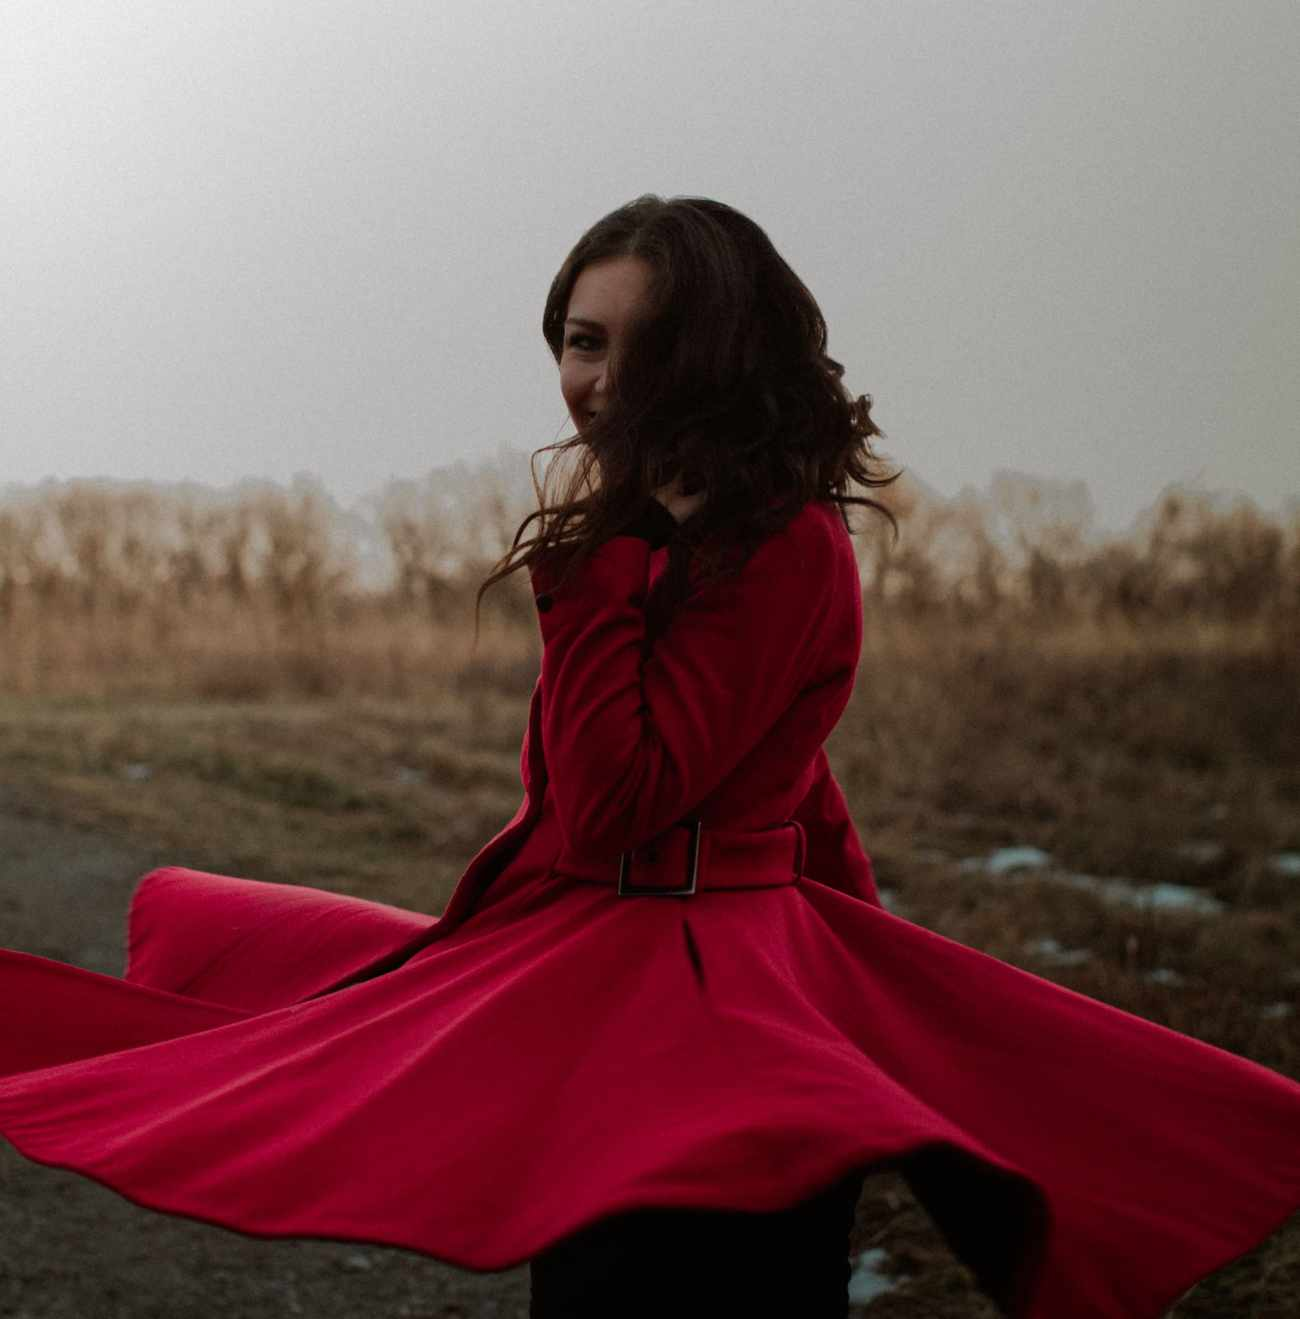 Woman spins dramatically in red coat